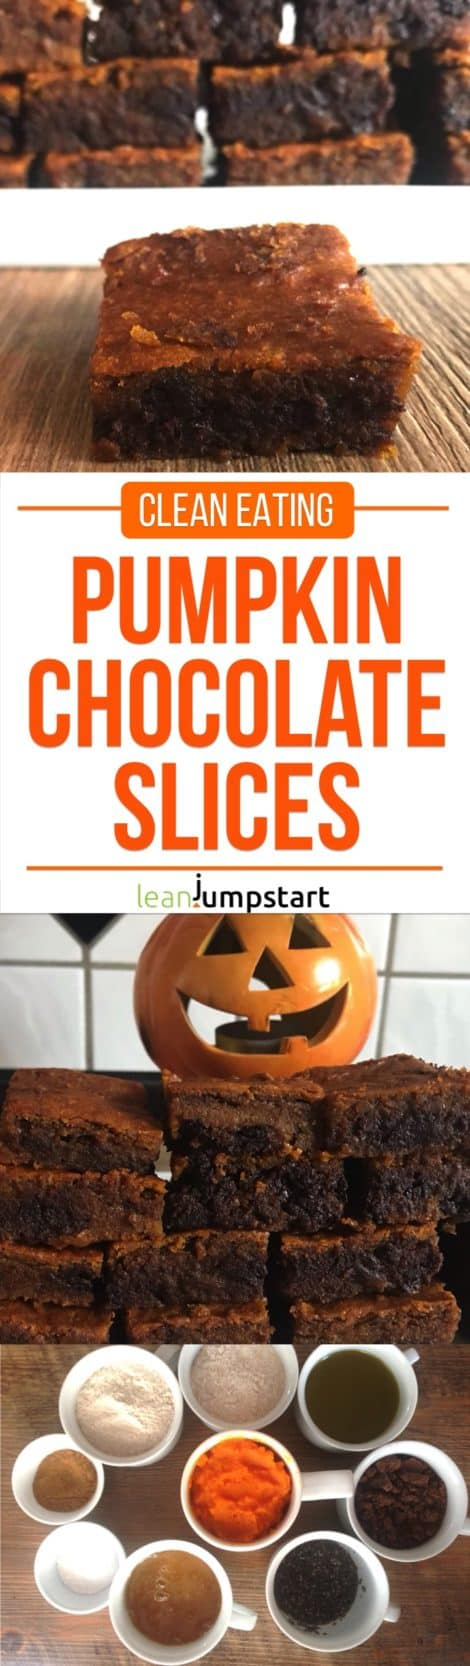 Pumpkin chocolate bars: The easy clean eating treat for weight management